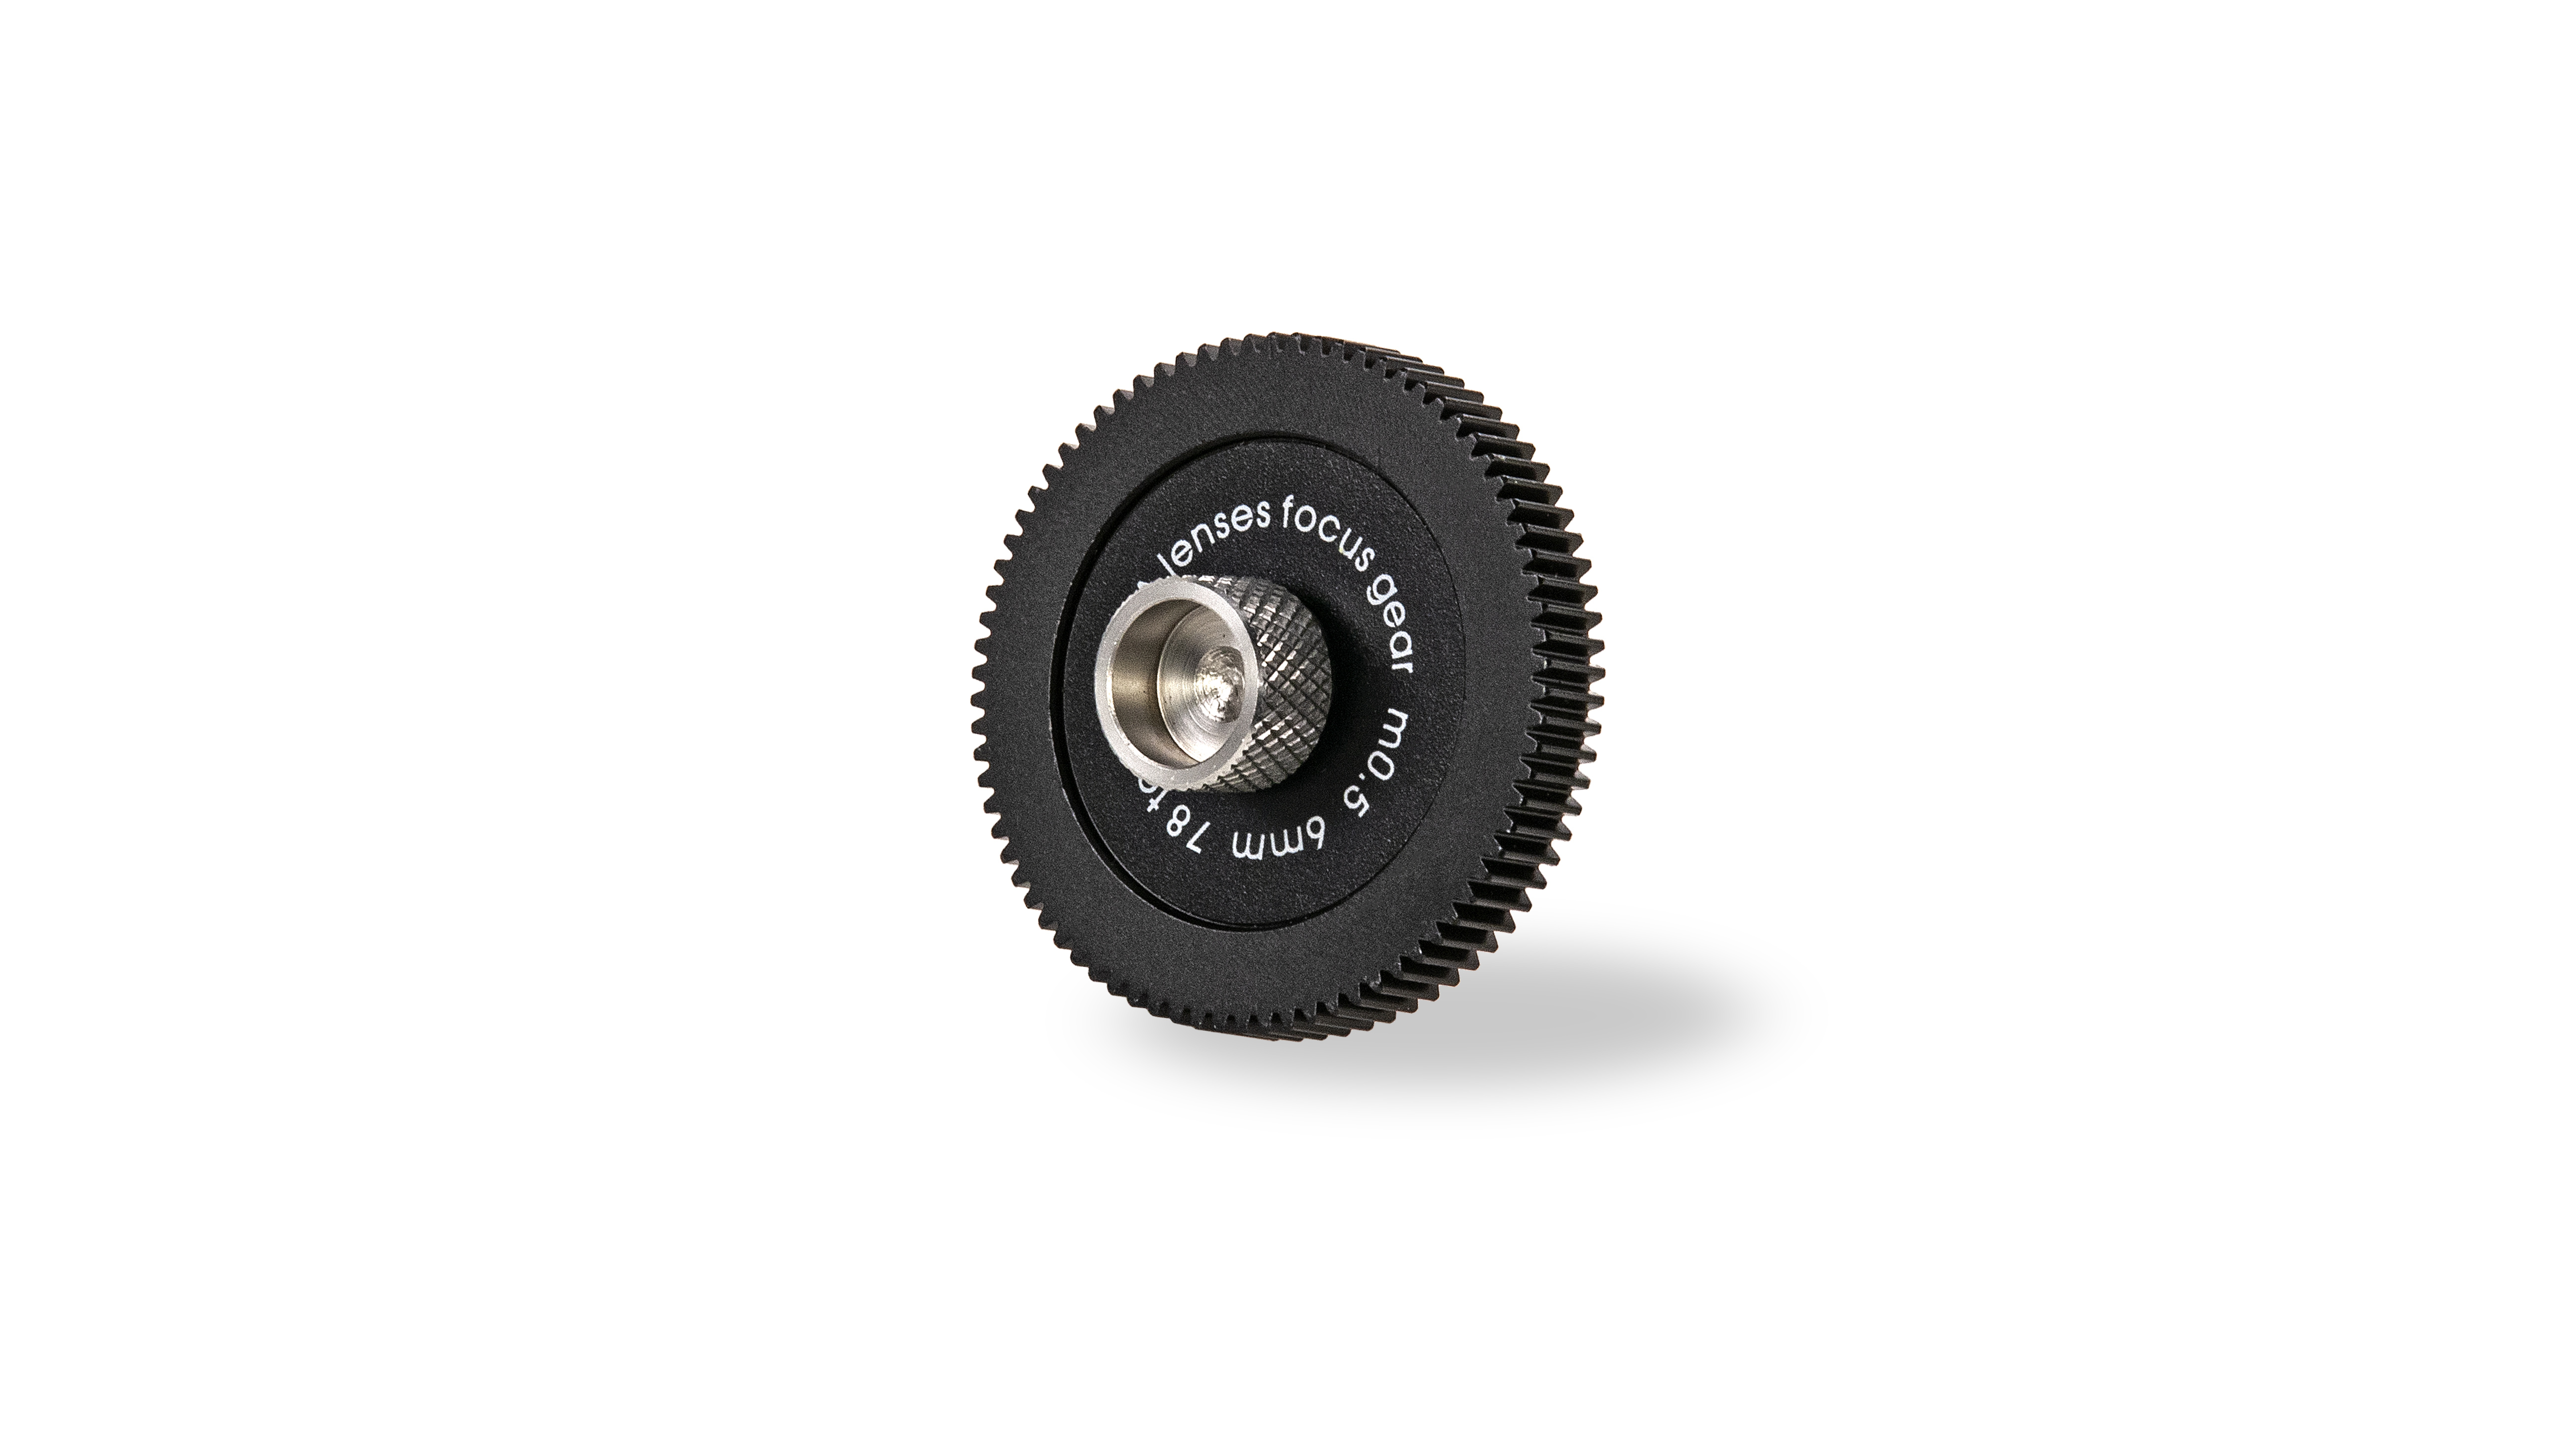 Follow Focus Gear for FF-T05 - 6mm 0.5m 78-tooth